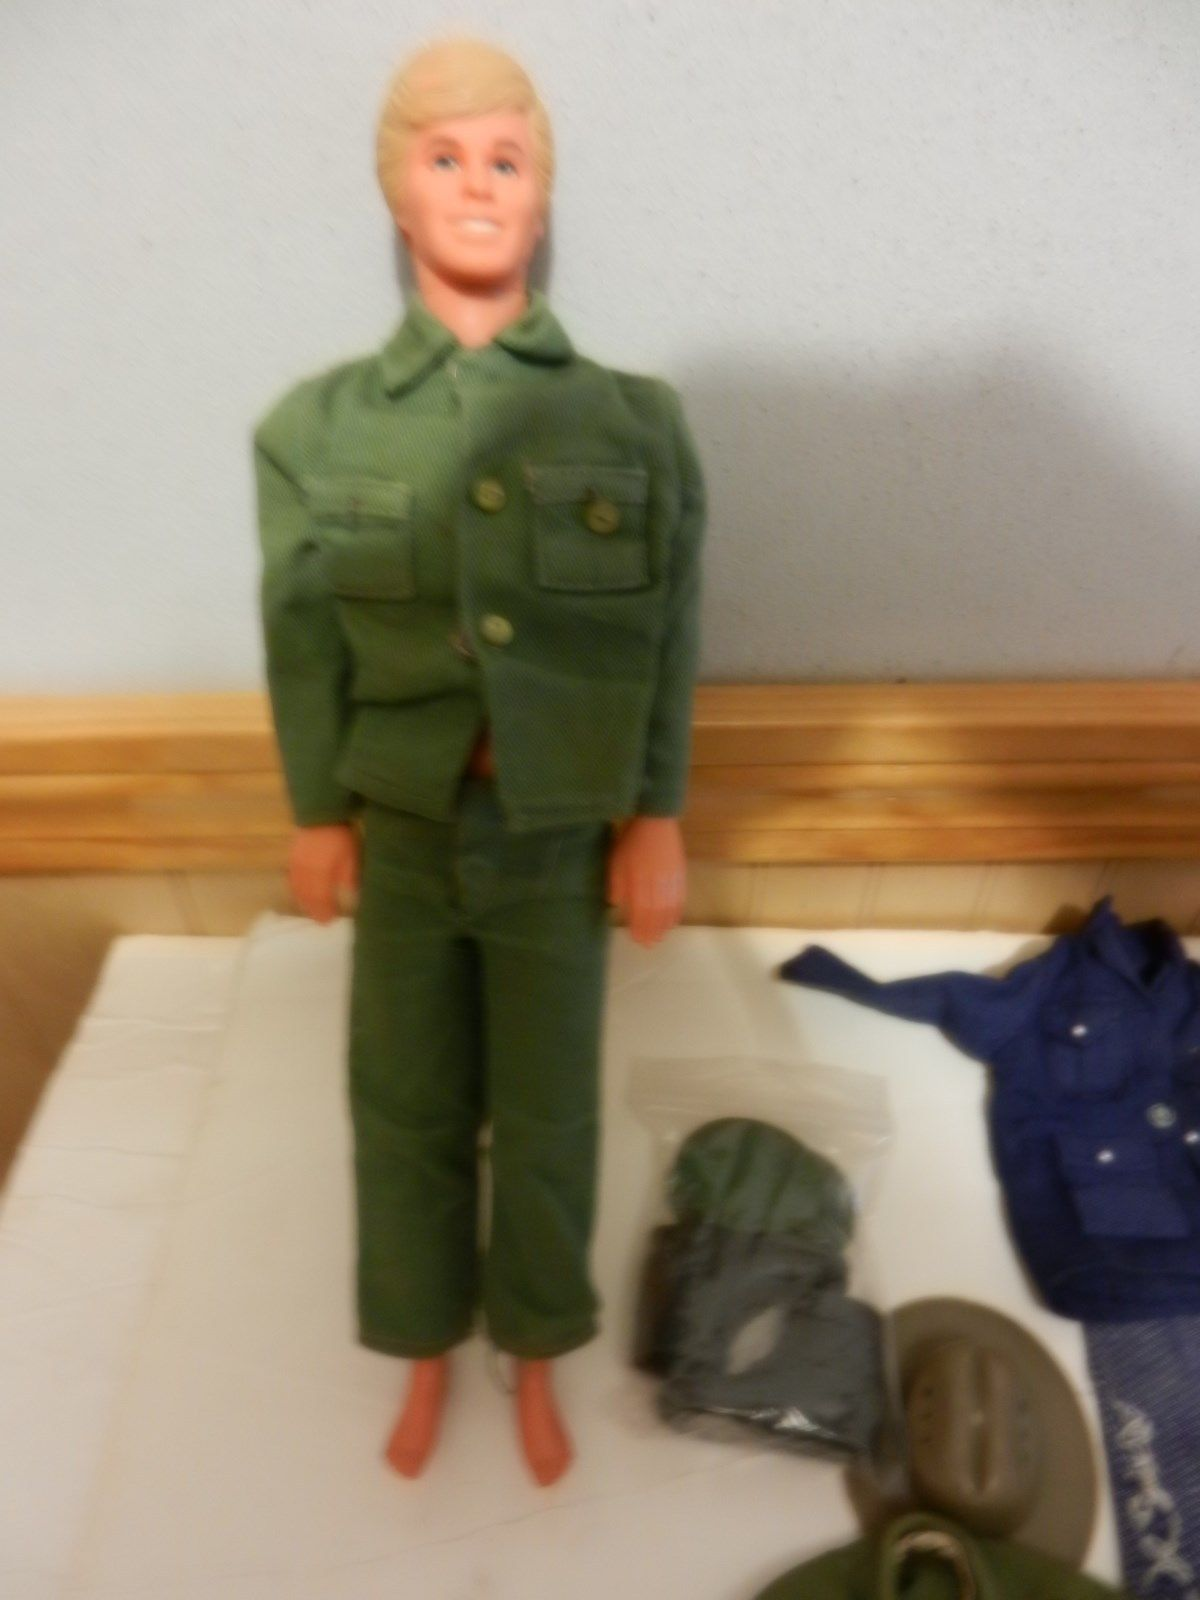 Vintage Lot Of 2 Ken Dolls Gi Joe Military Uniforms Clothes Accessories Army Ebay Outfit Accessories Uniform Clothes Vintage Outfits